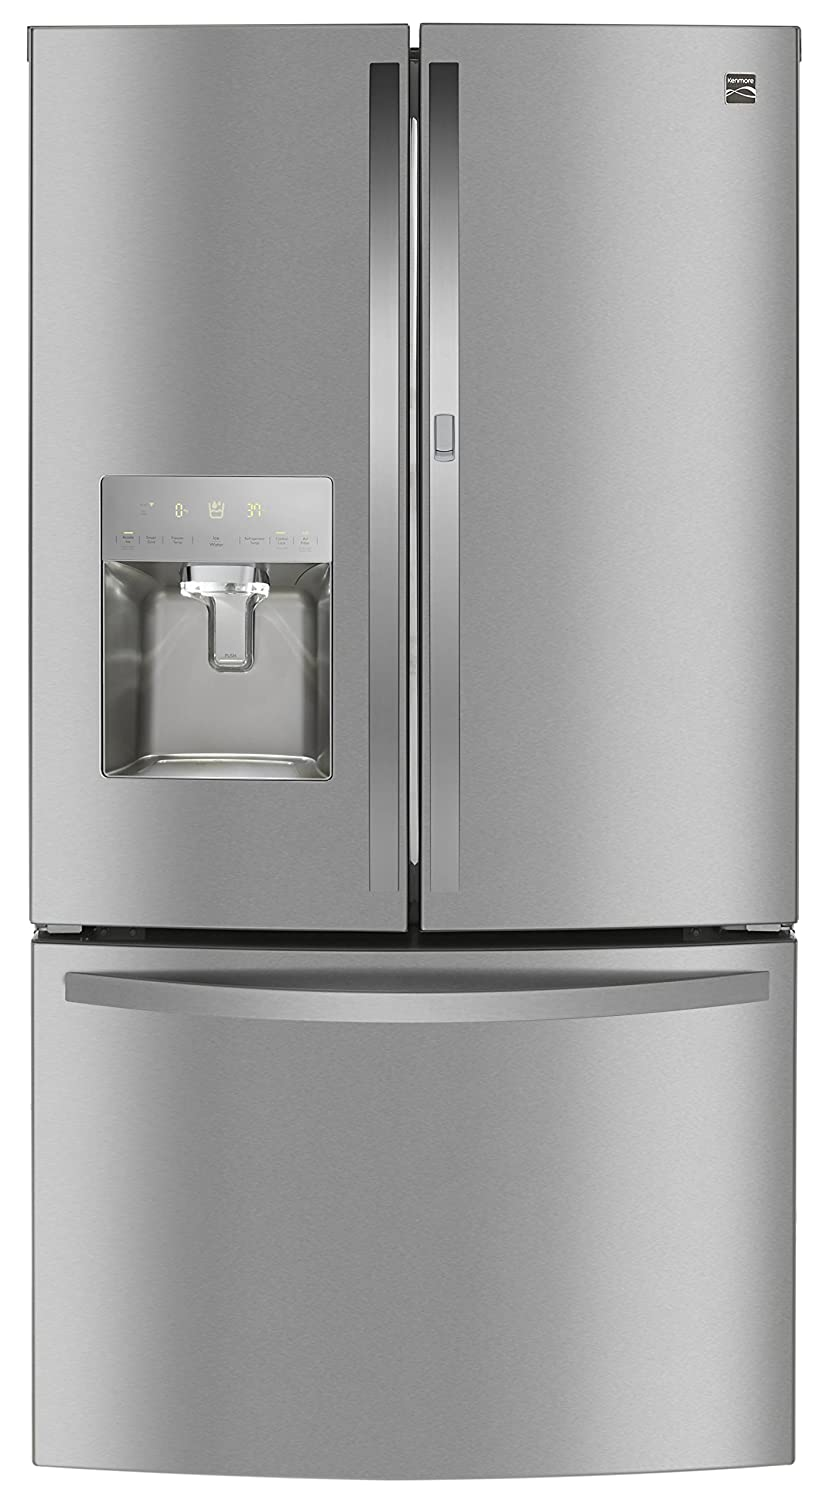 Kenmore 73115 French Door Smart Refrigerator, 27.7 cu. ft. in Stainless-Works with Alexa and enabled with Amazon Dash Replenishment System, includes delivery and hookup